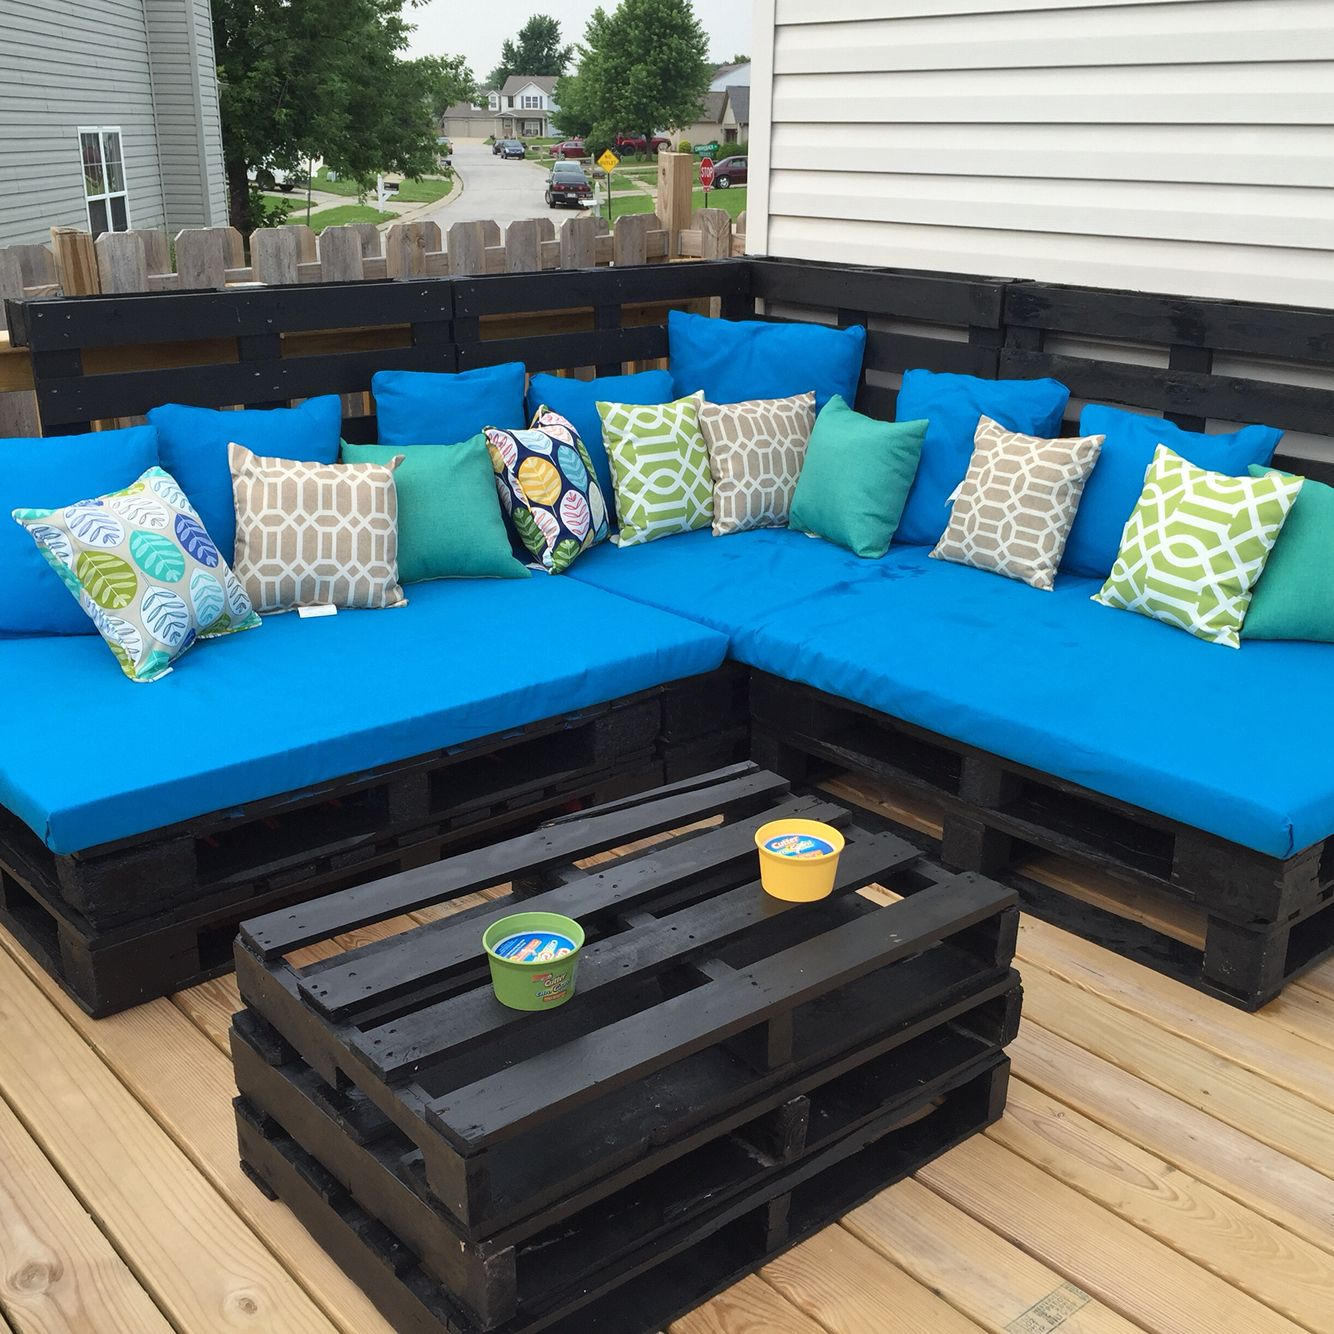 Project Pallet Couch Complete So Comfy And Perfect For A Night On The Deck Terassenideen Diy Mobel Paletten Mobel Aus Paletten